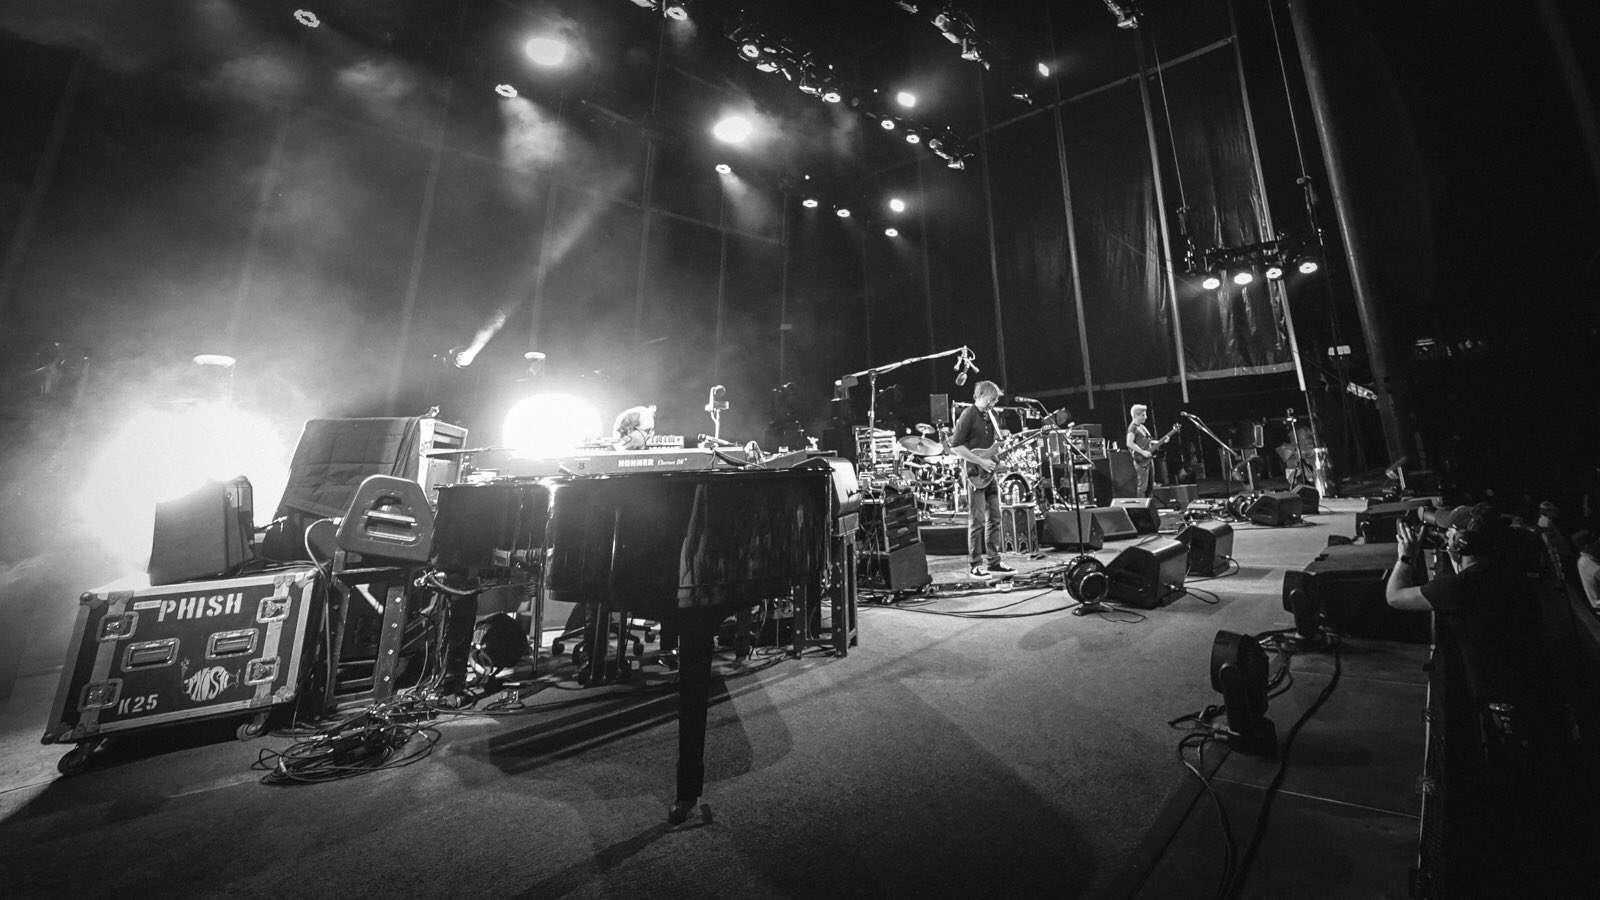 Photo © Phish (Patrick Jordan)